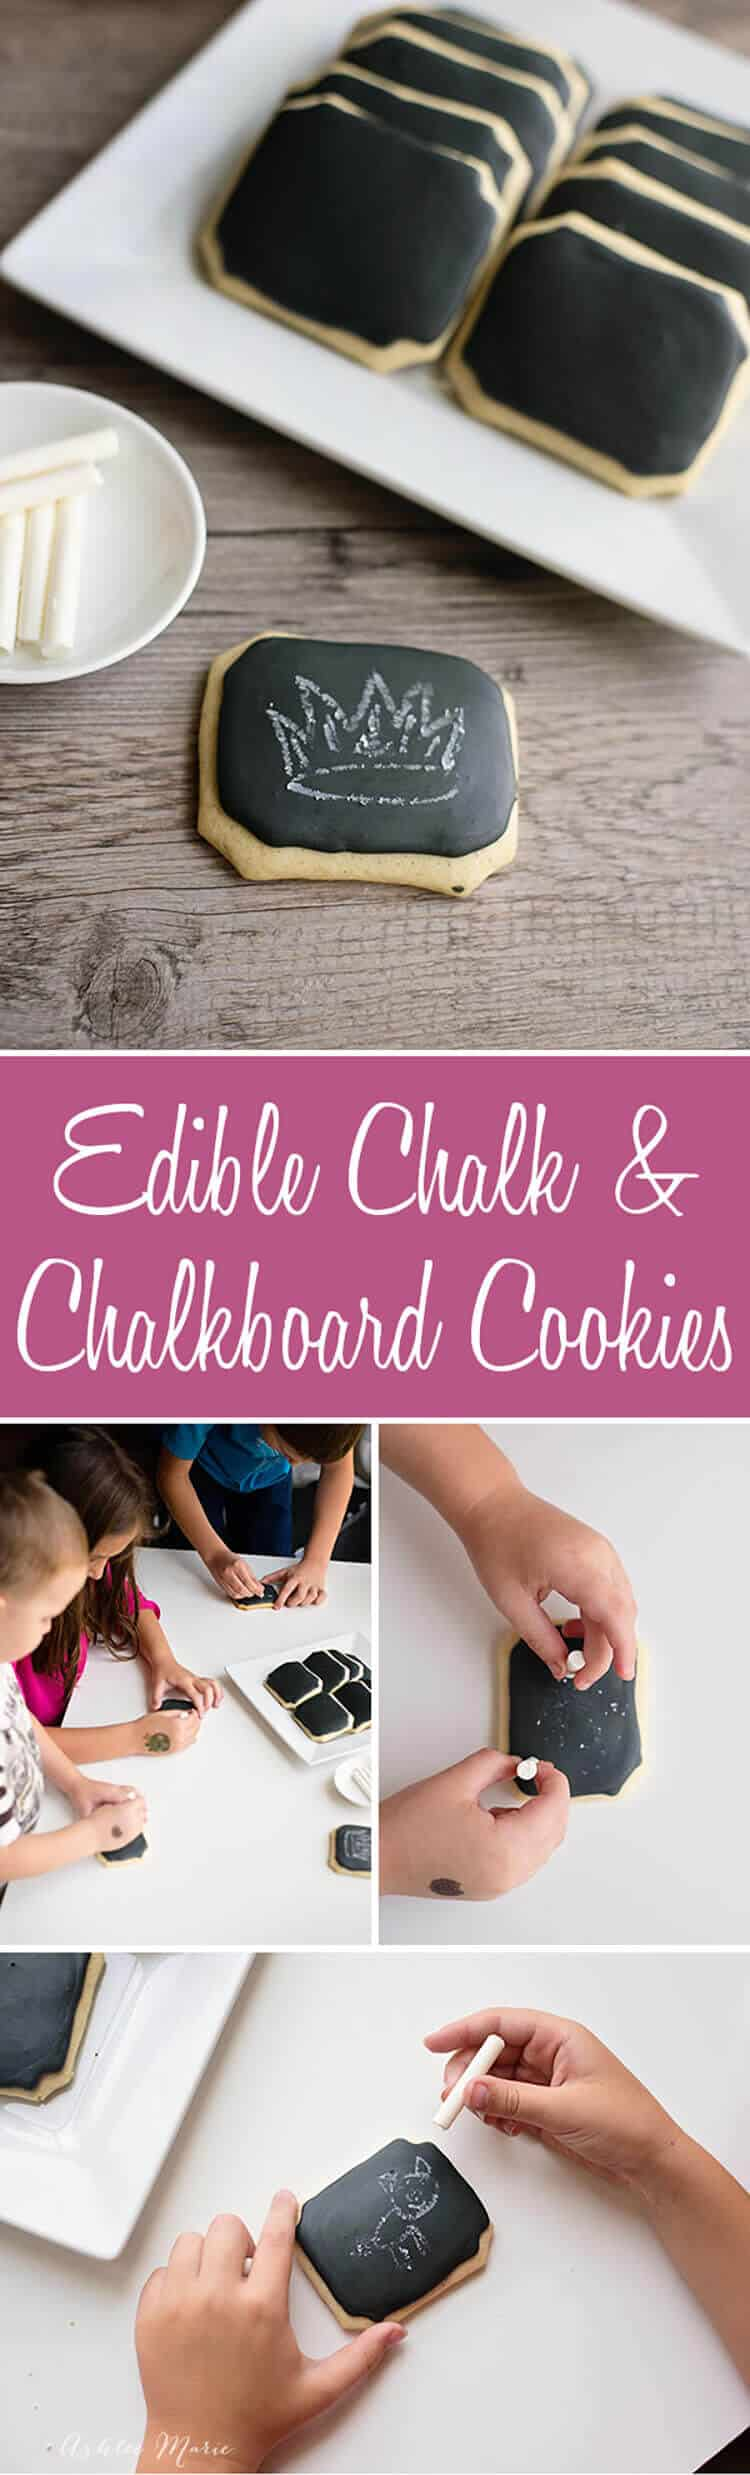 it is easy to make homemade chalkboard cookies and edible chalk and it's just as fun to play with them as to eat them, a great treat and snack for school or parties